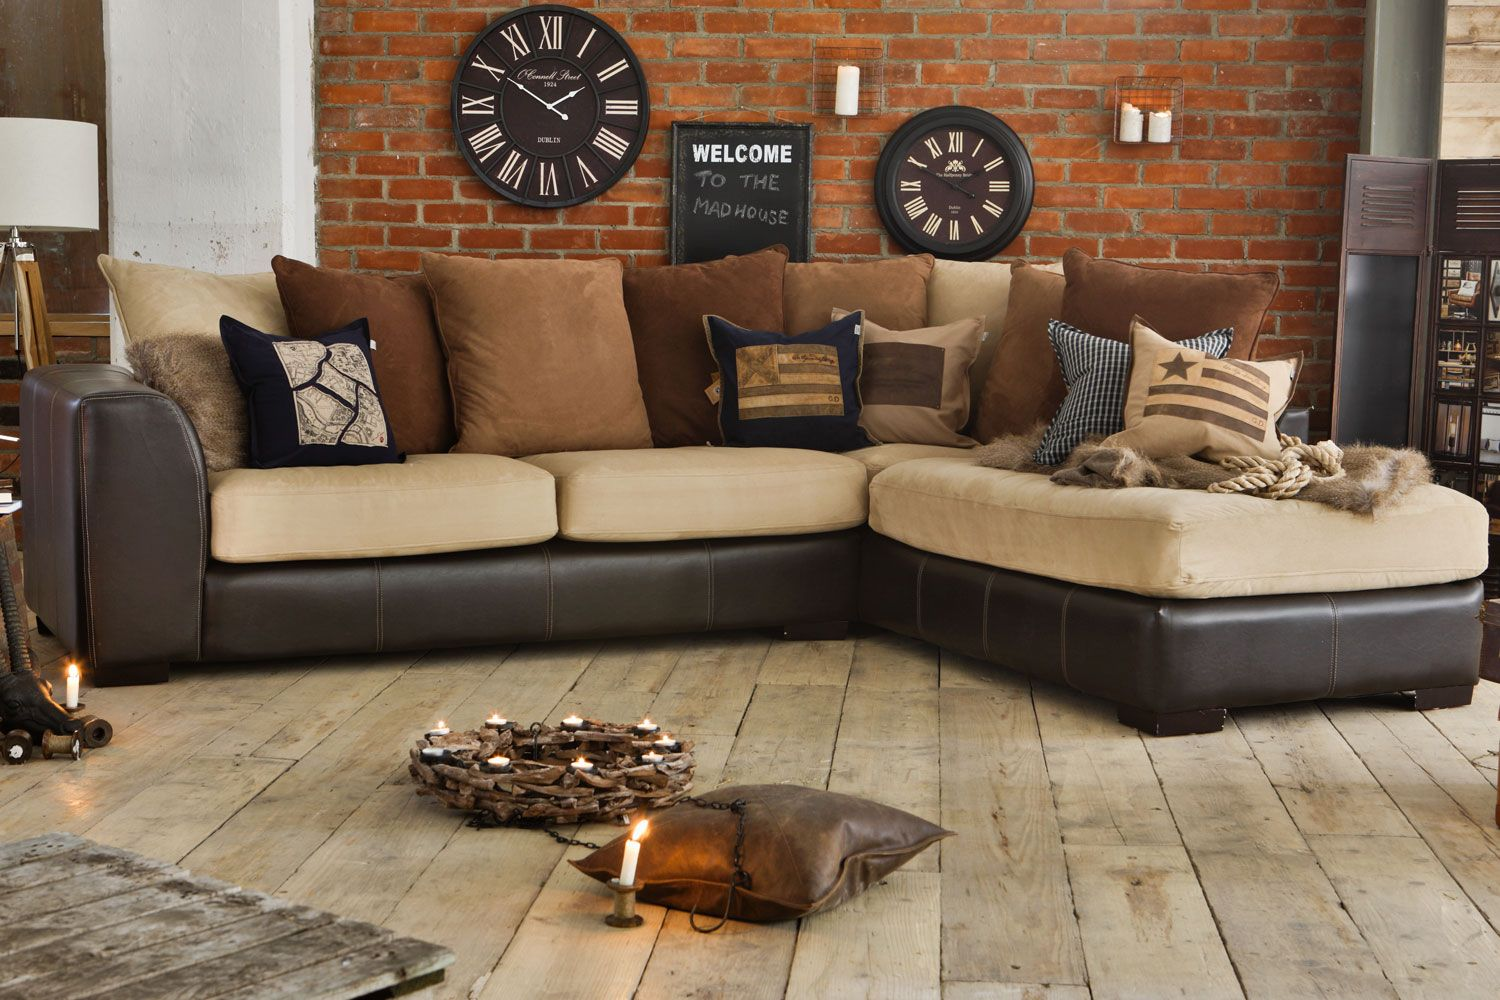 Sofa Cover Lagosta Leather Corner Sofa from Harvey Norman Ireland Photoshoot Pinterest House